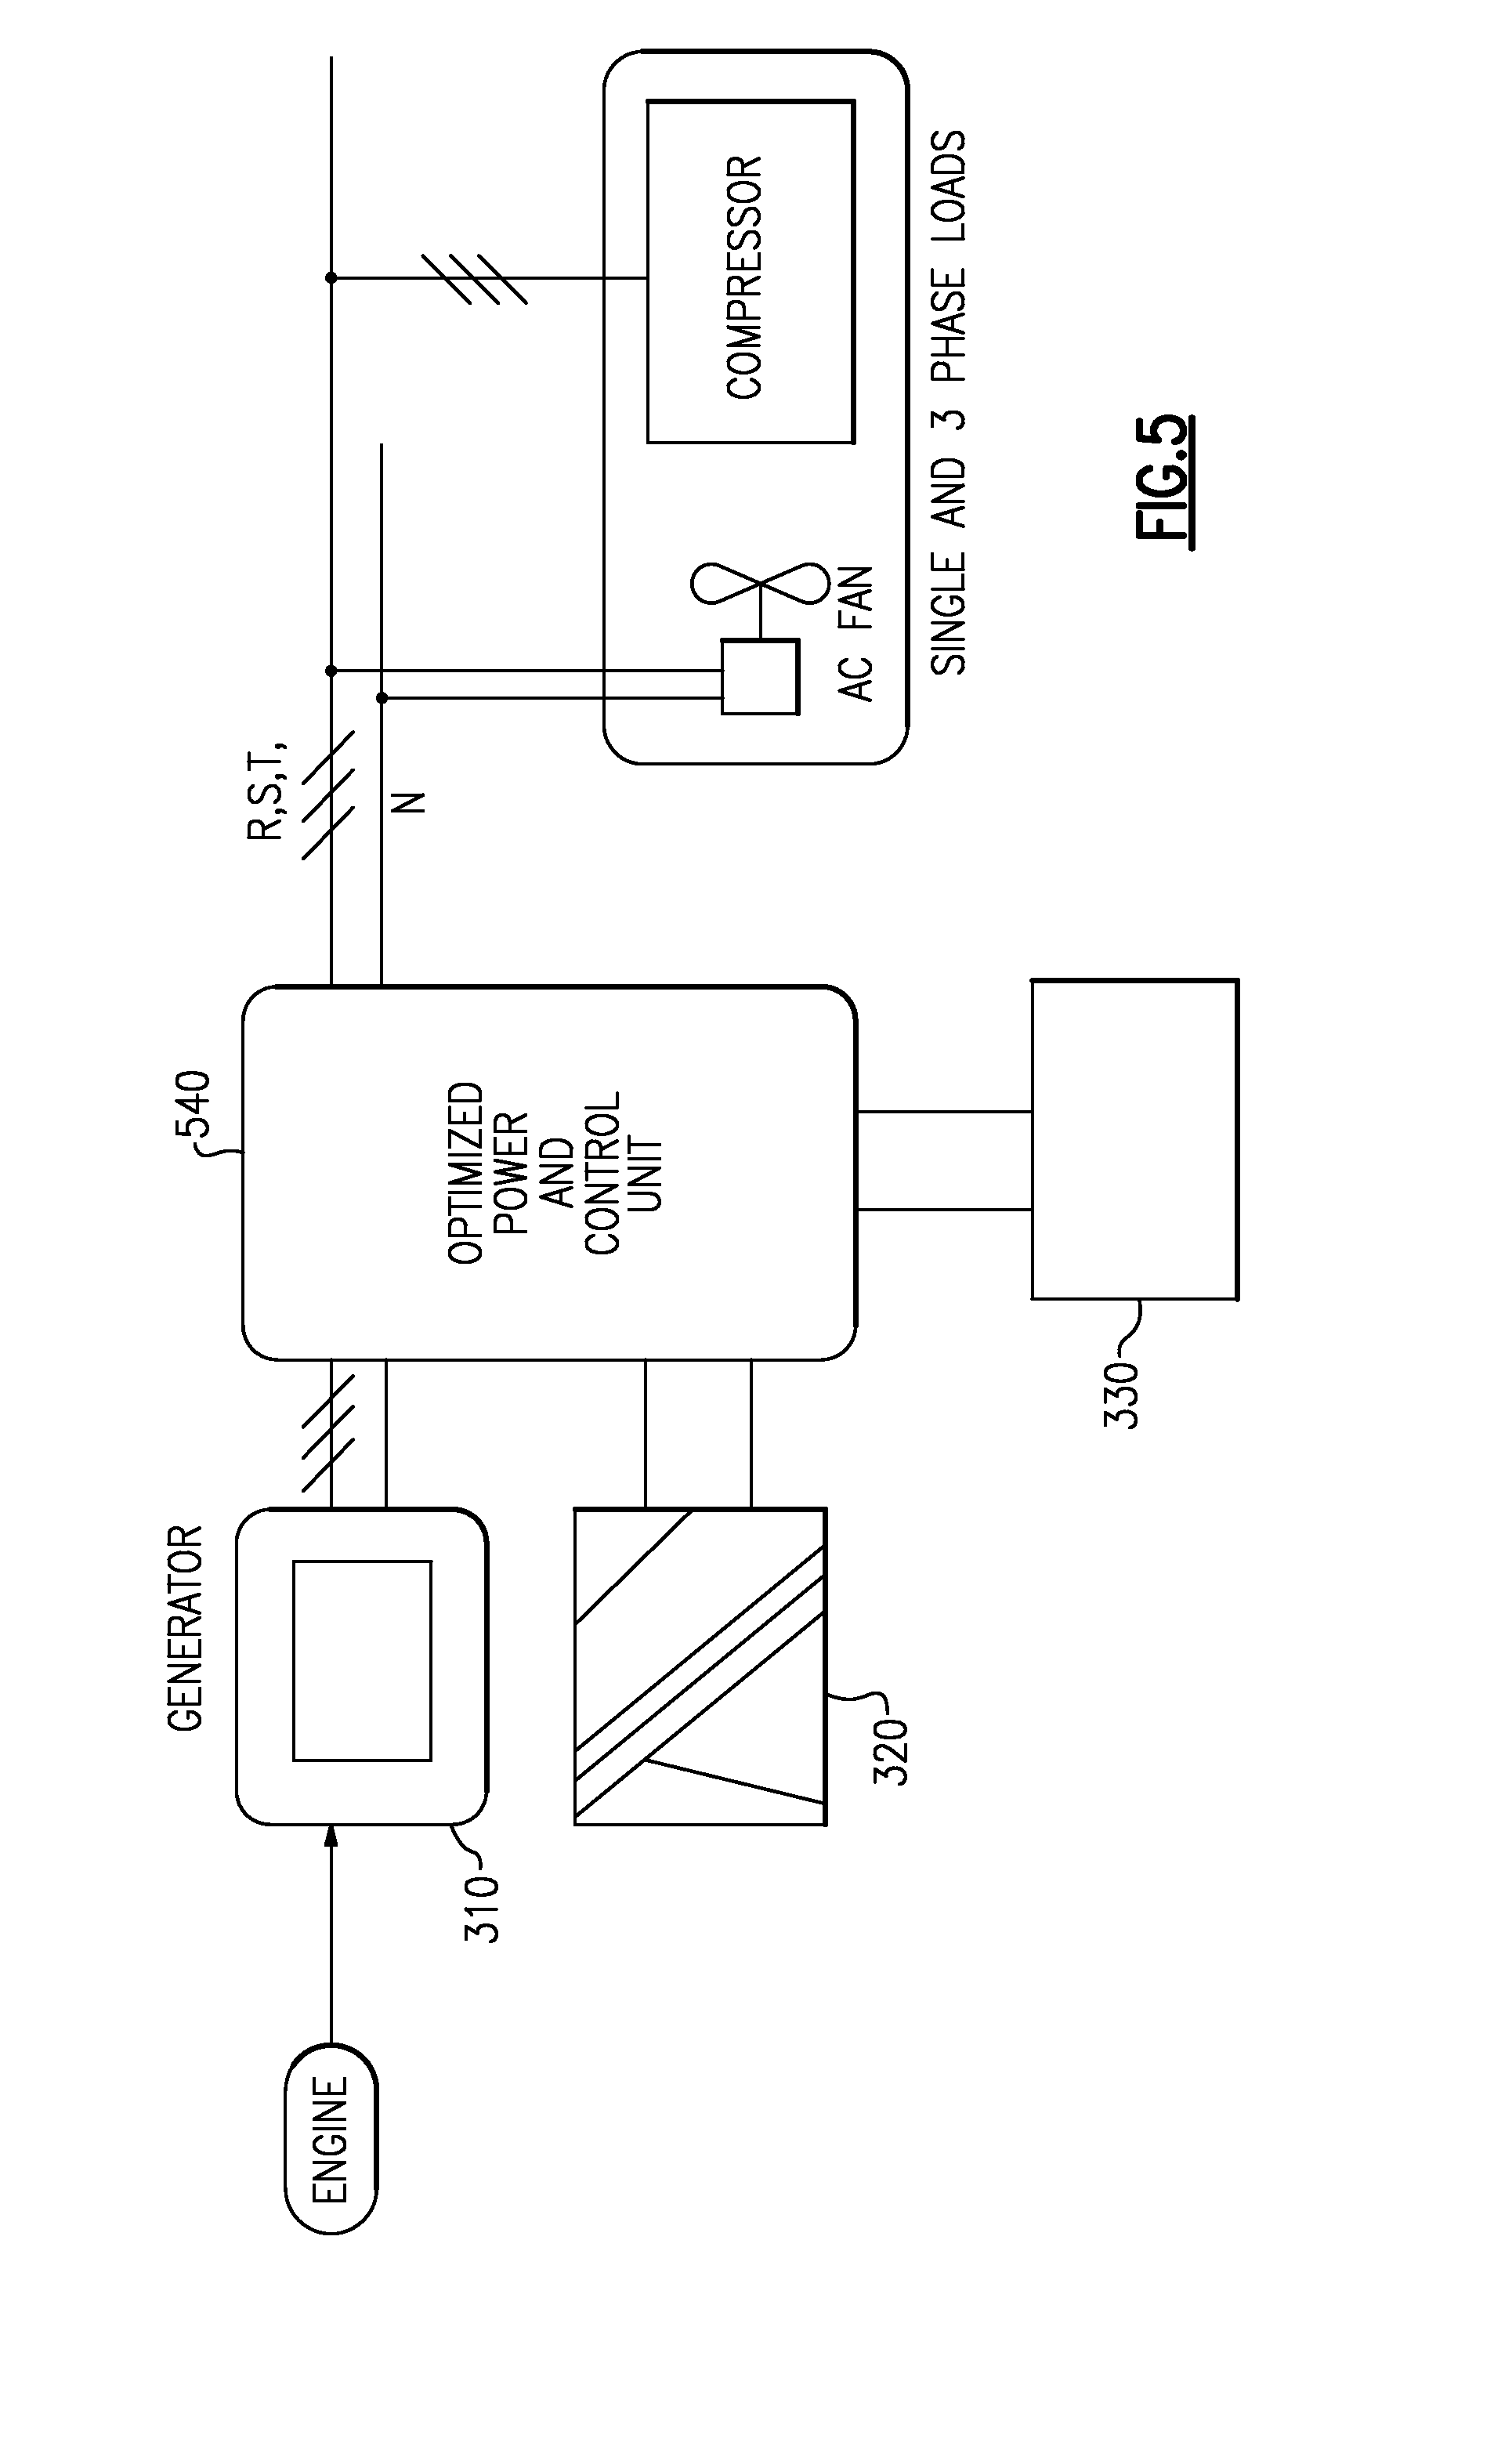 patent us20130000342 solar power assisted transport Transpo F540 Wiring Diagram Transpo F540 Wiring Diagram #2